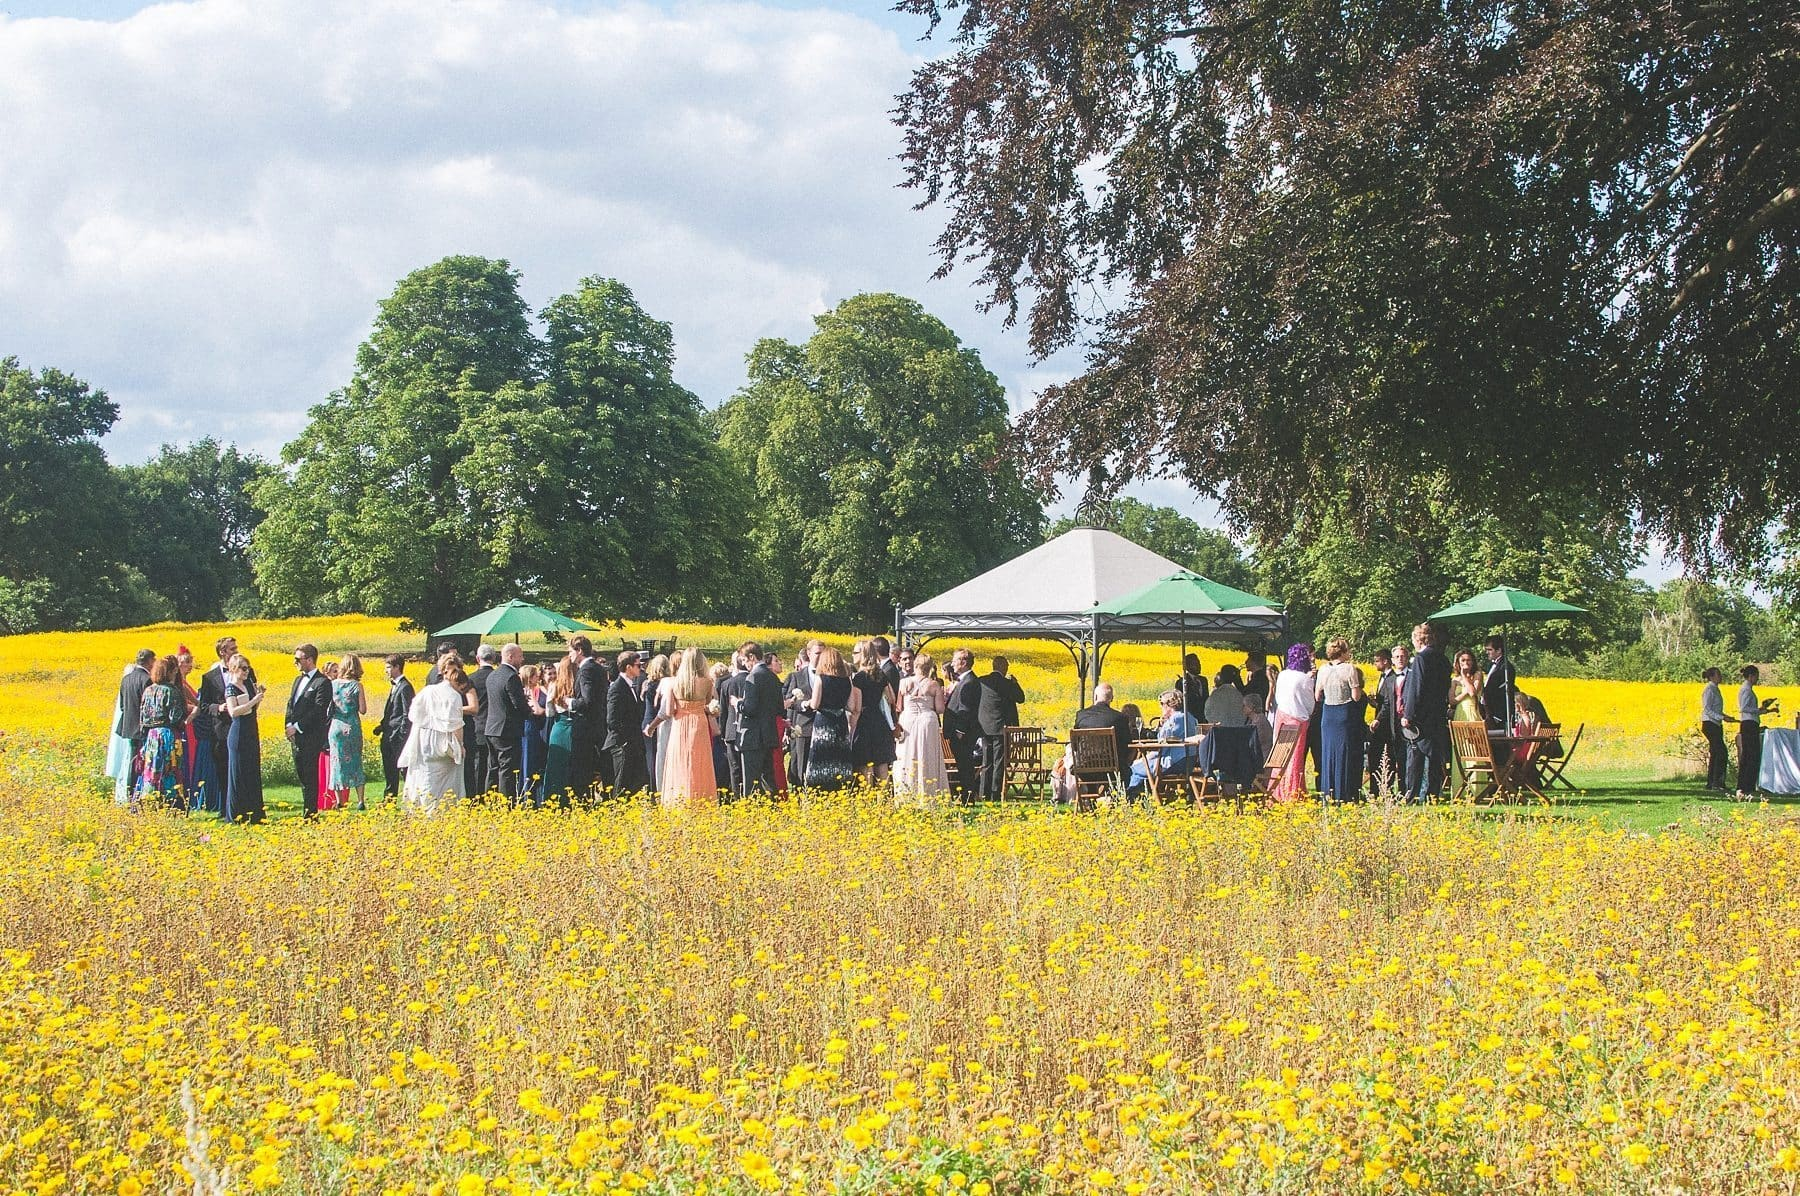 Coworth Park Barn summer wedding guests gathering at the gazebo in the summer wildflower meadow